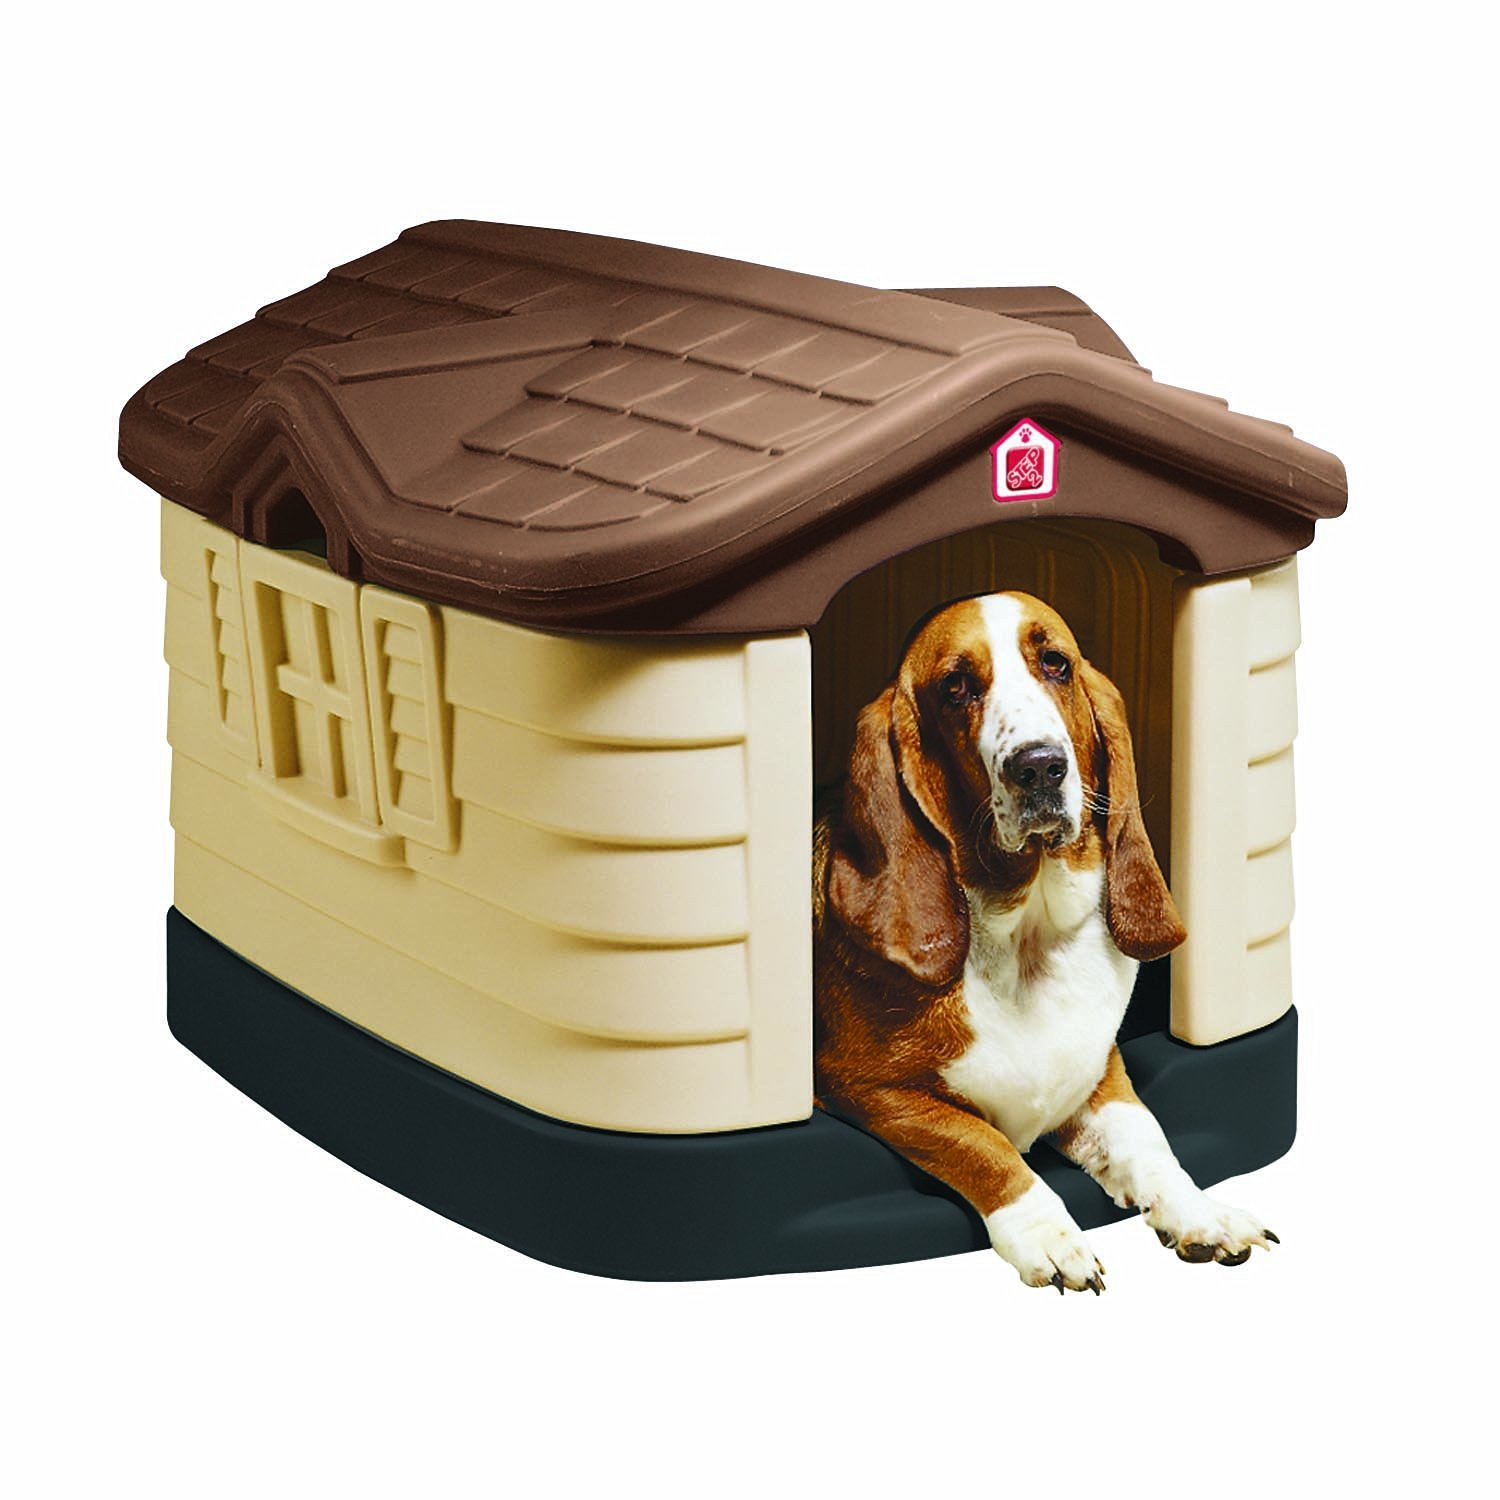 Pet Zone Step 2 Cozy Cottage Plastic Dog House With Double-Wall Insulation – Fits Dogs up to 75 lbs, Two Color Choices.